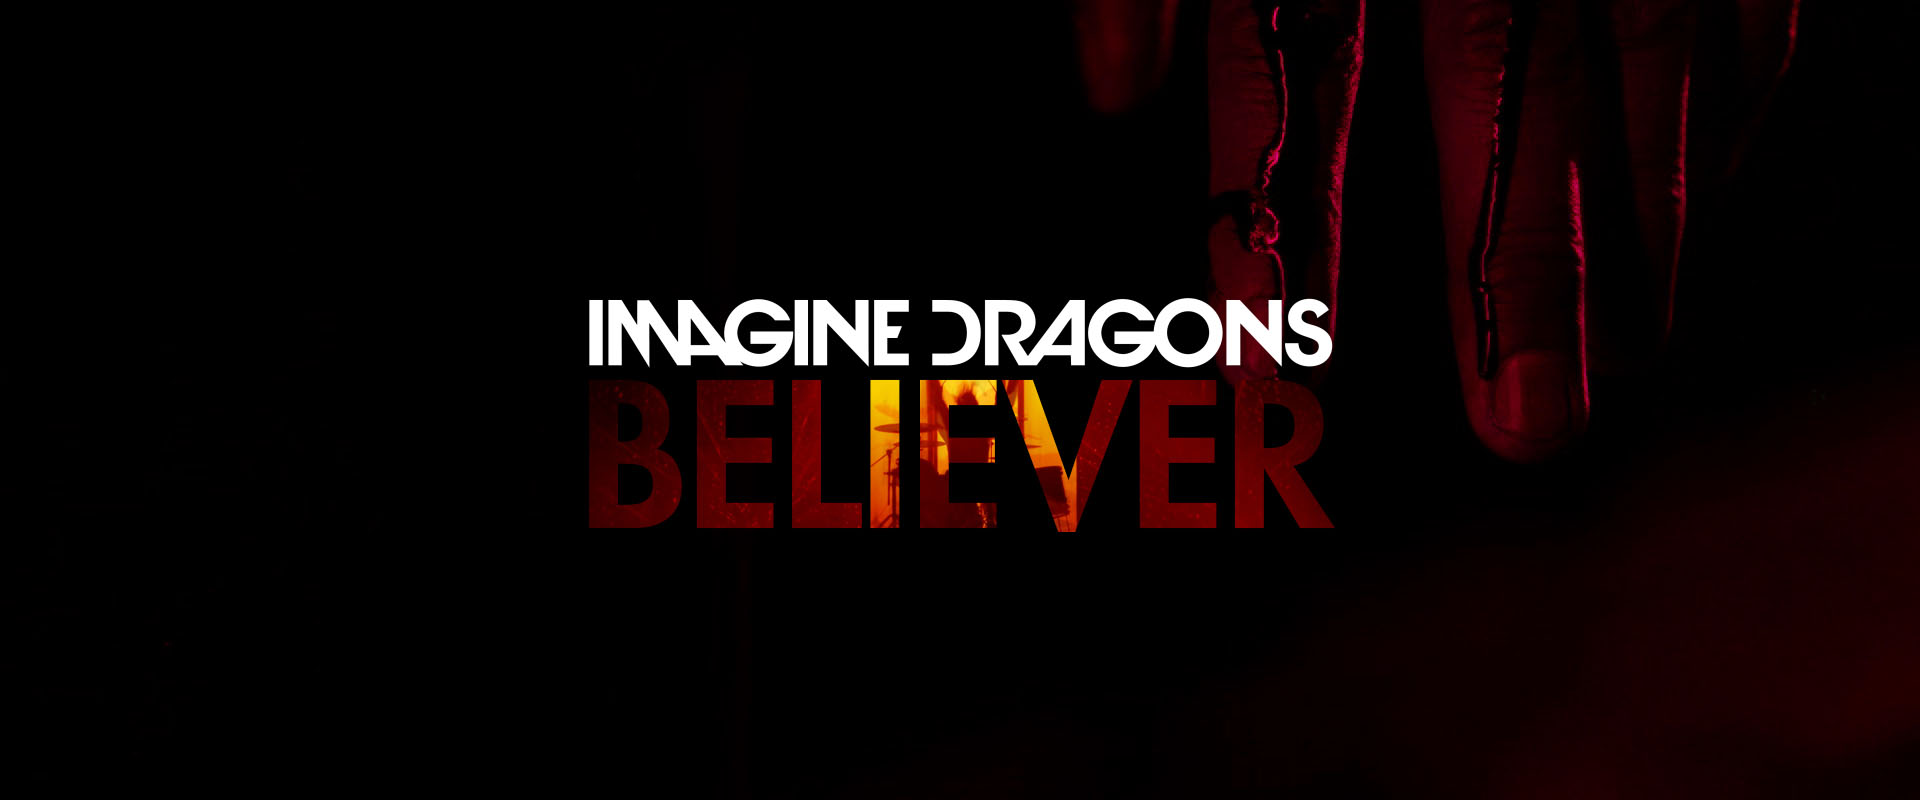 imagine dragons believer music video fan edit thumbnail